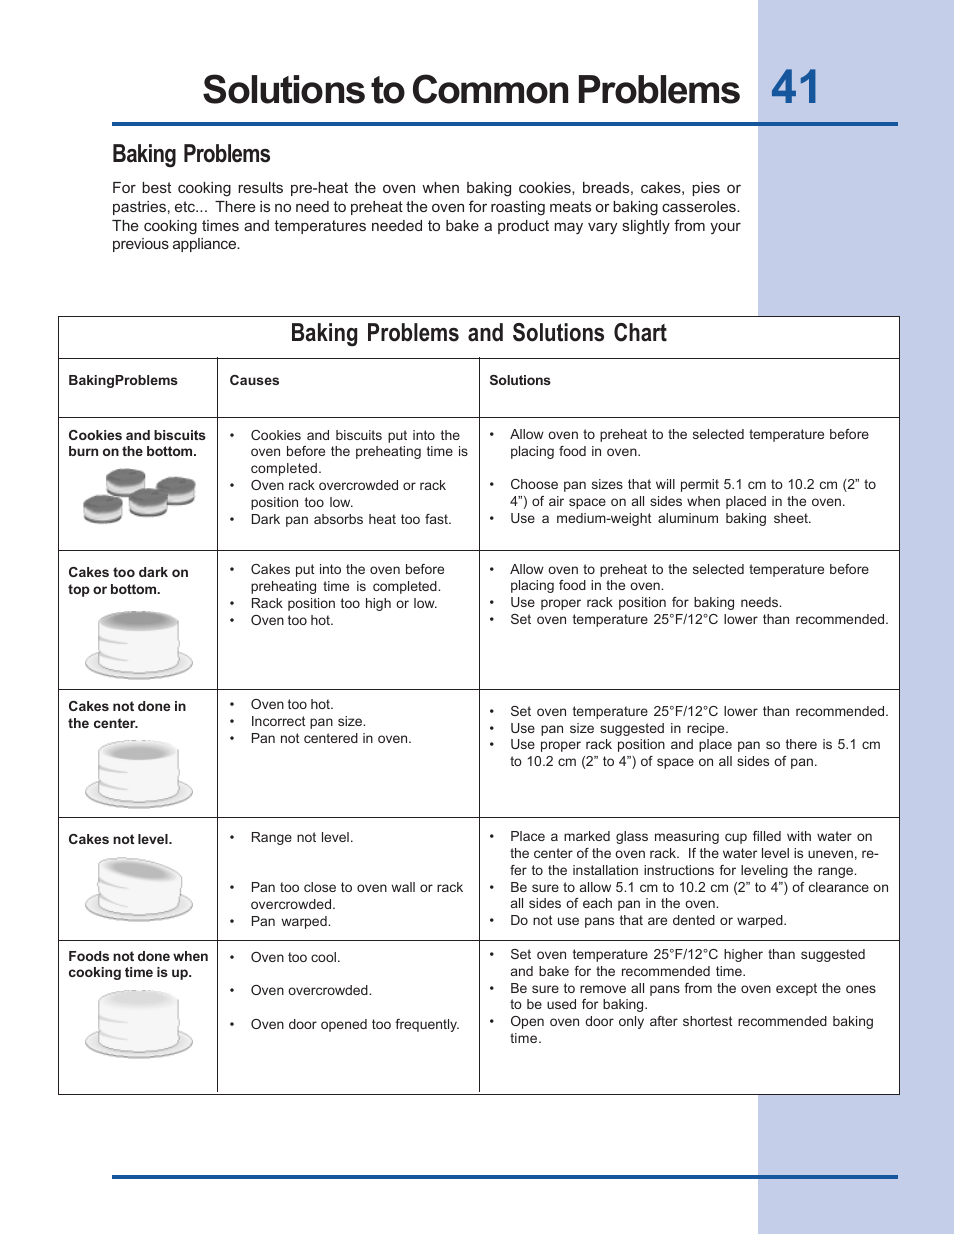 Solutions to common problems, Baking problems, Baking problems and  solutions chart   Electrolux Built